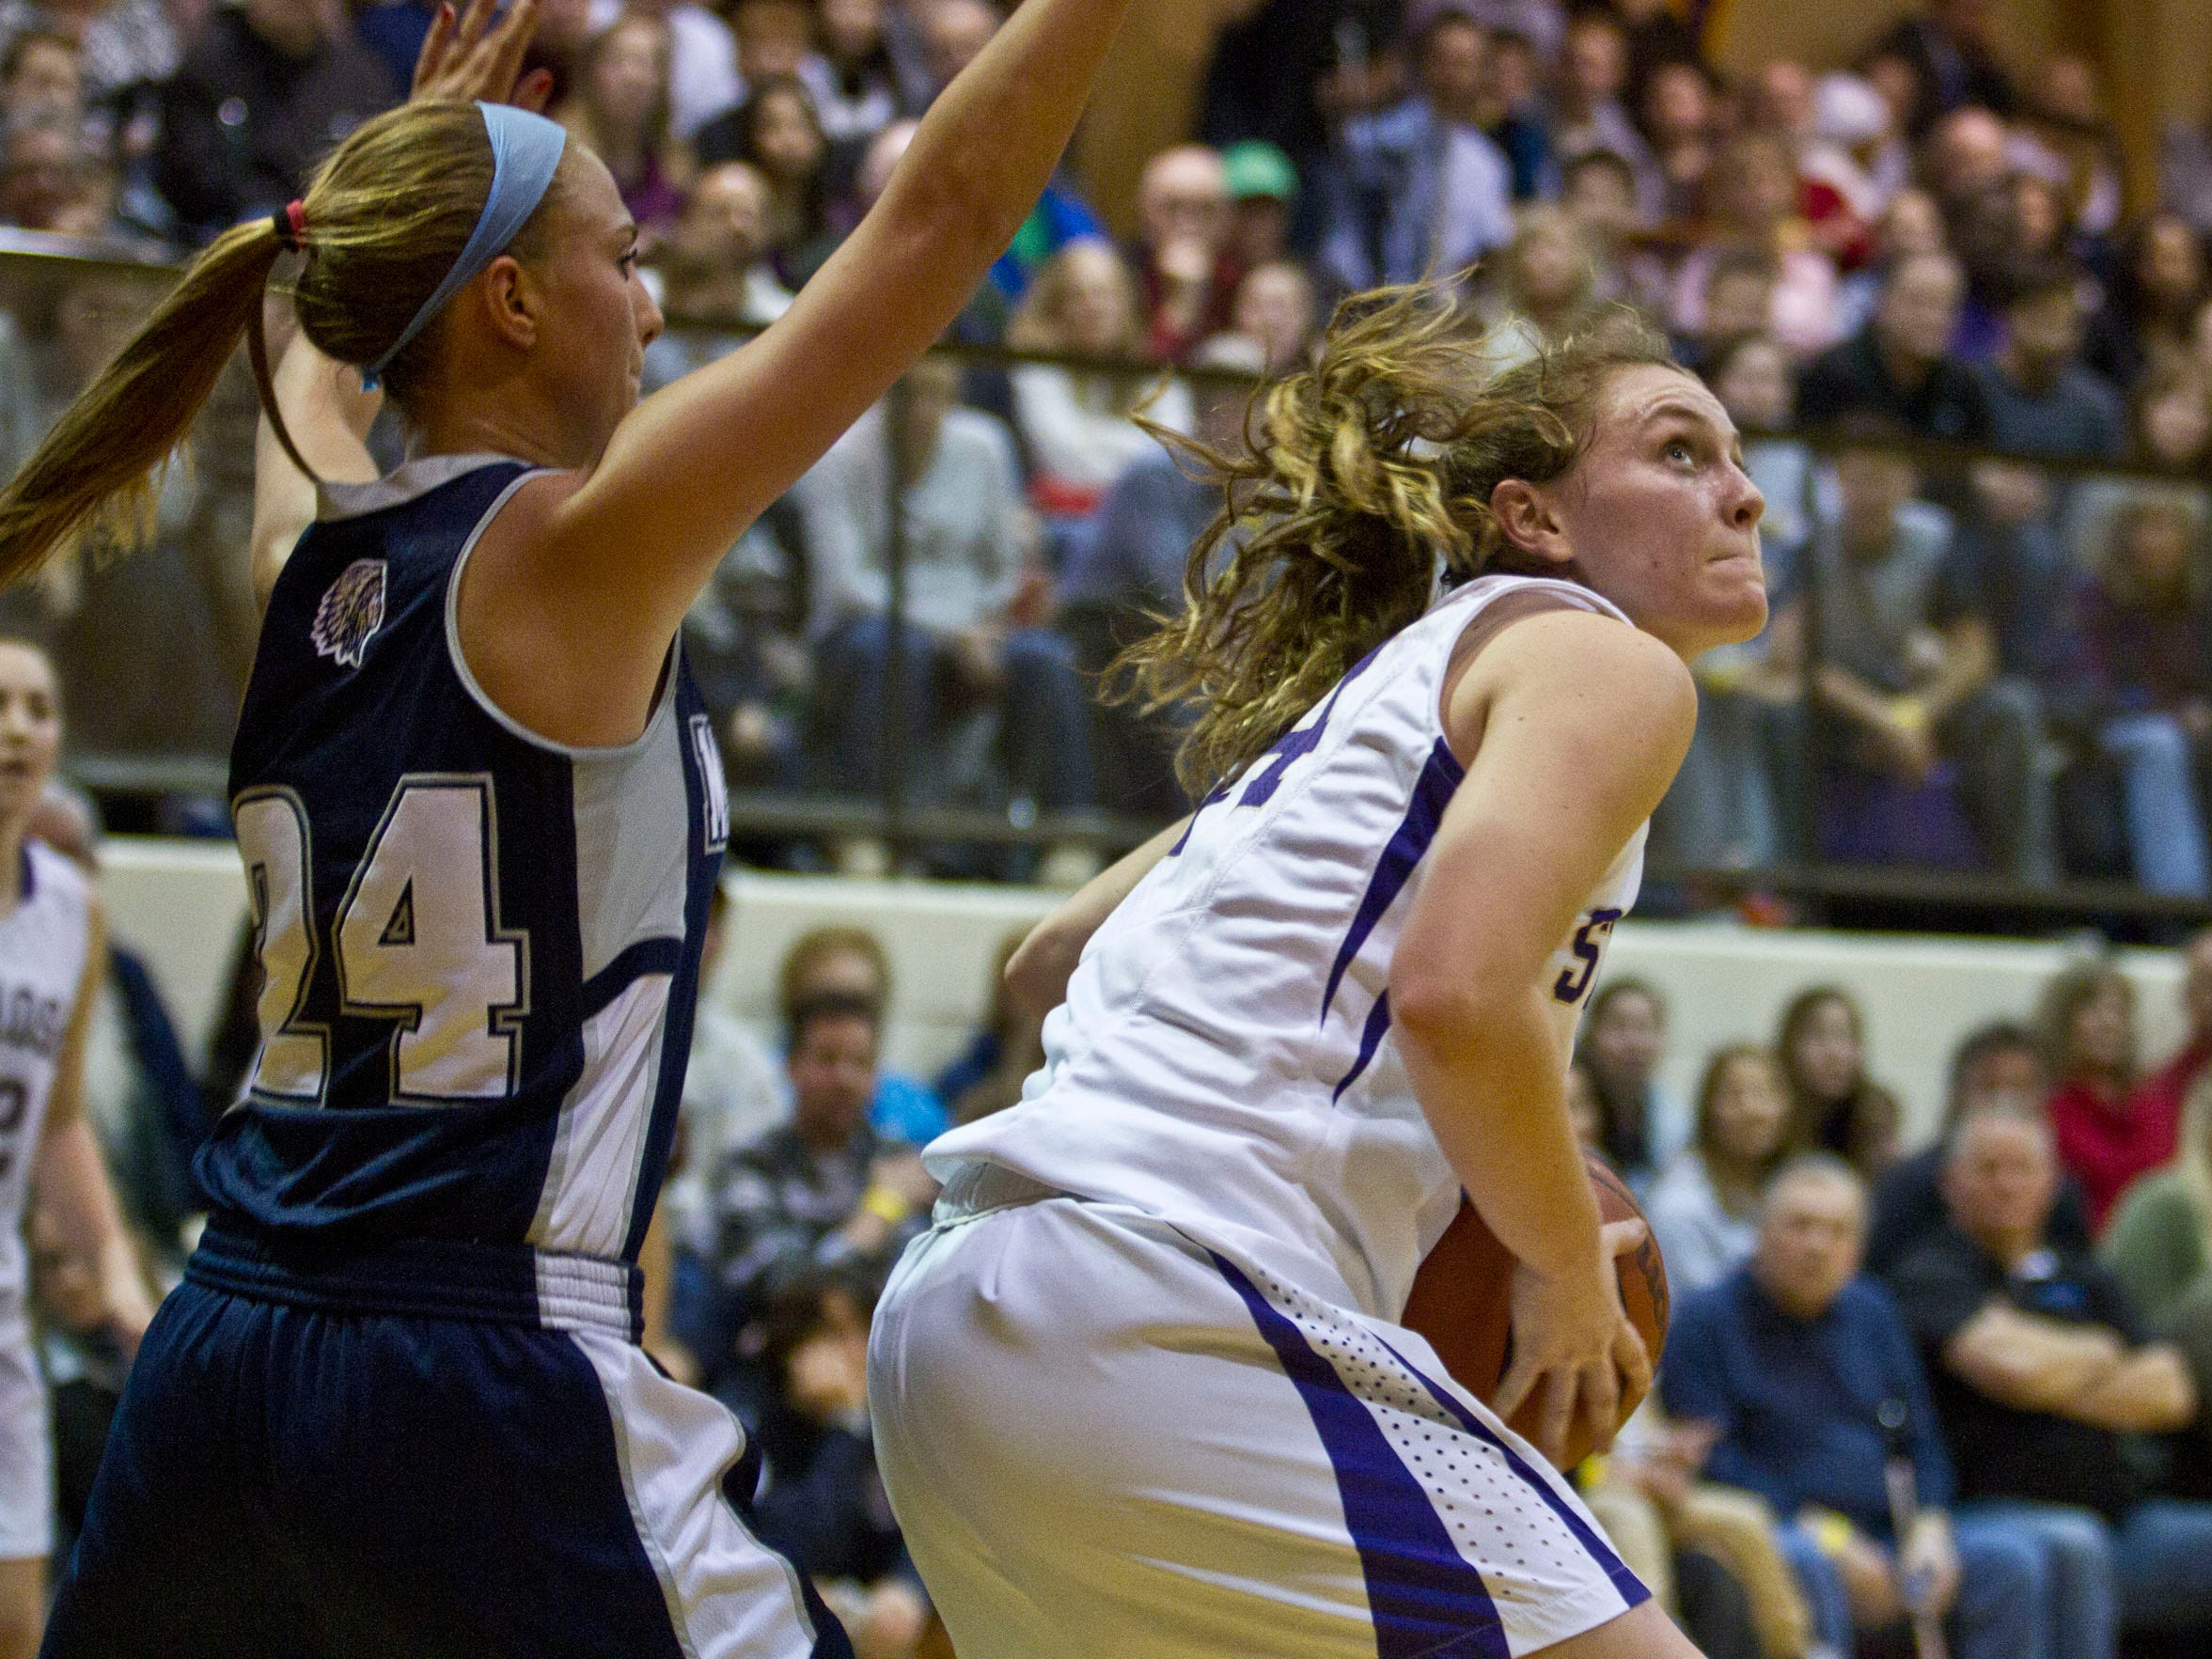 Manasquan's Courtney Hagaman defends as St. Rose's Kat Phipps looks to shoot in Saturday's game.